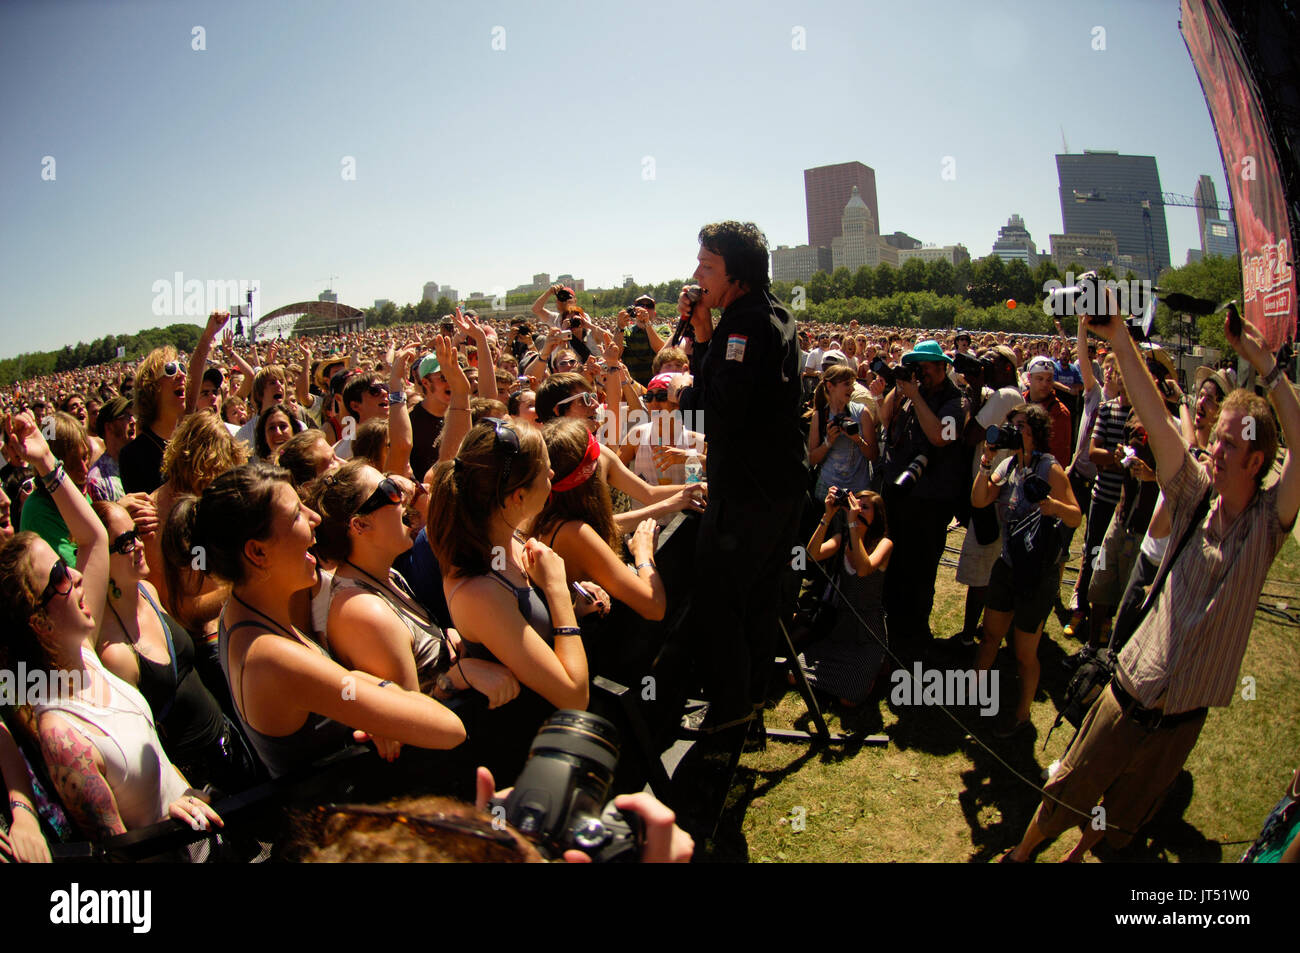 Tim DeLaughter Polyphonic Spree perform Lollapalooza Grant Park Chicago. - Stock Image